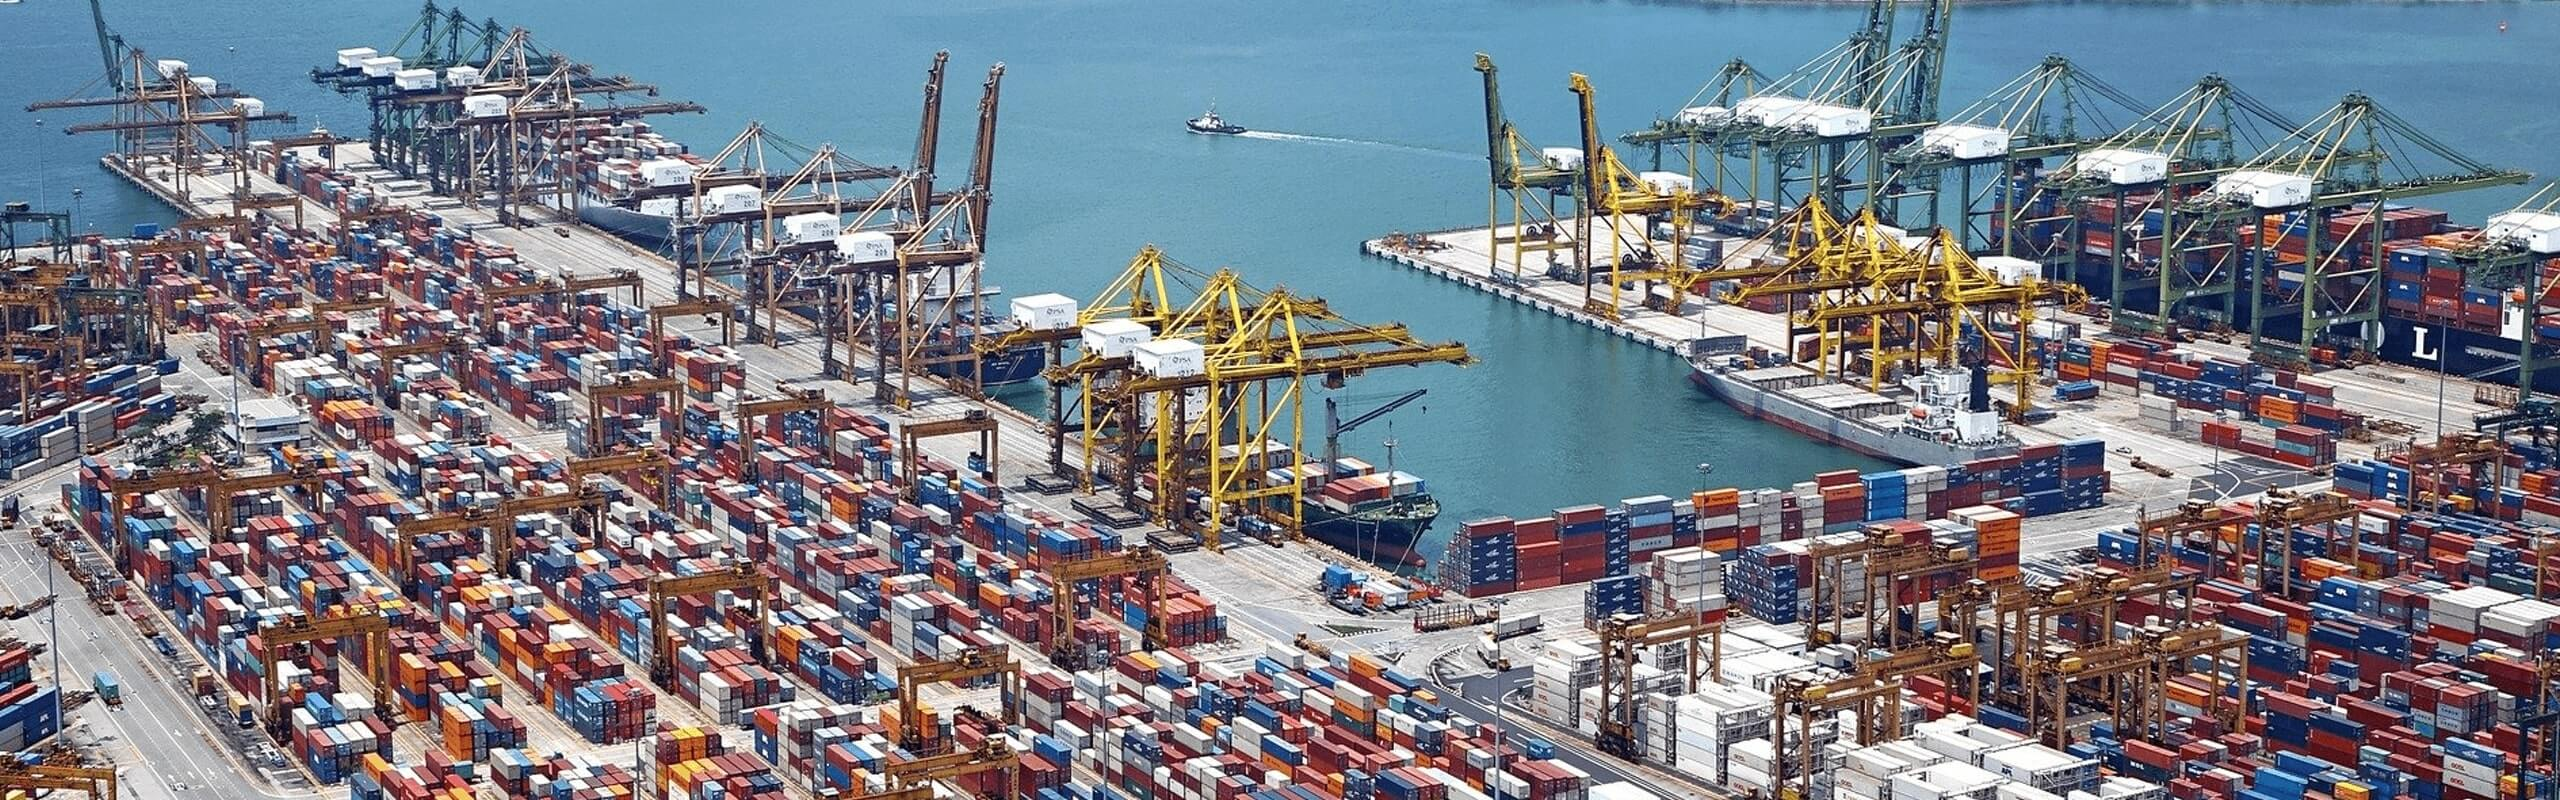 Aerial view of a shipping port